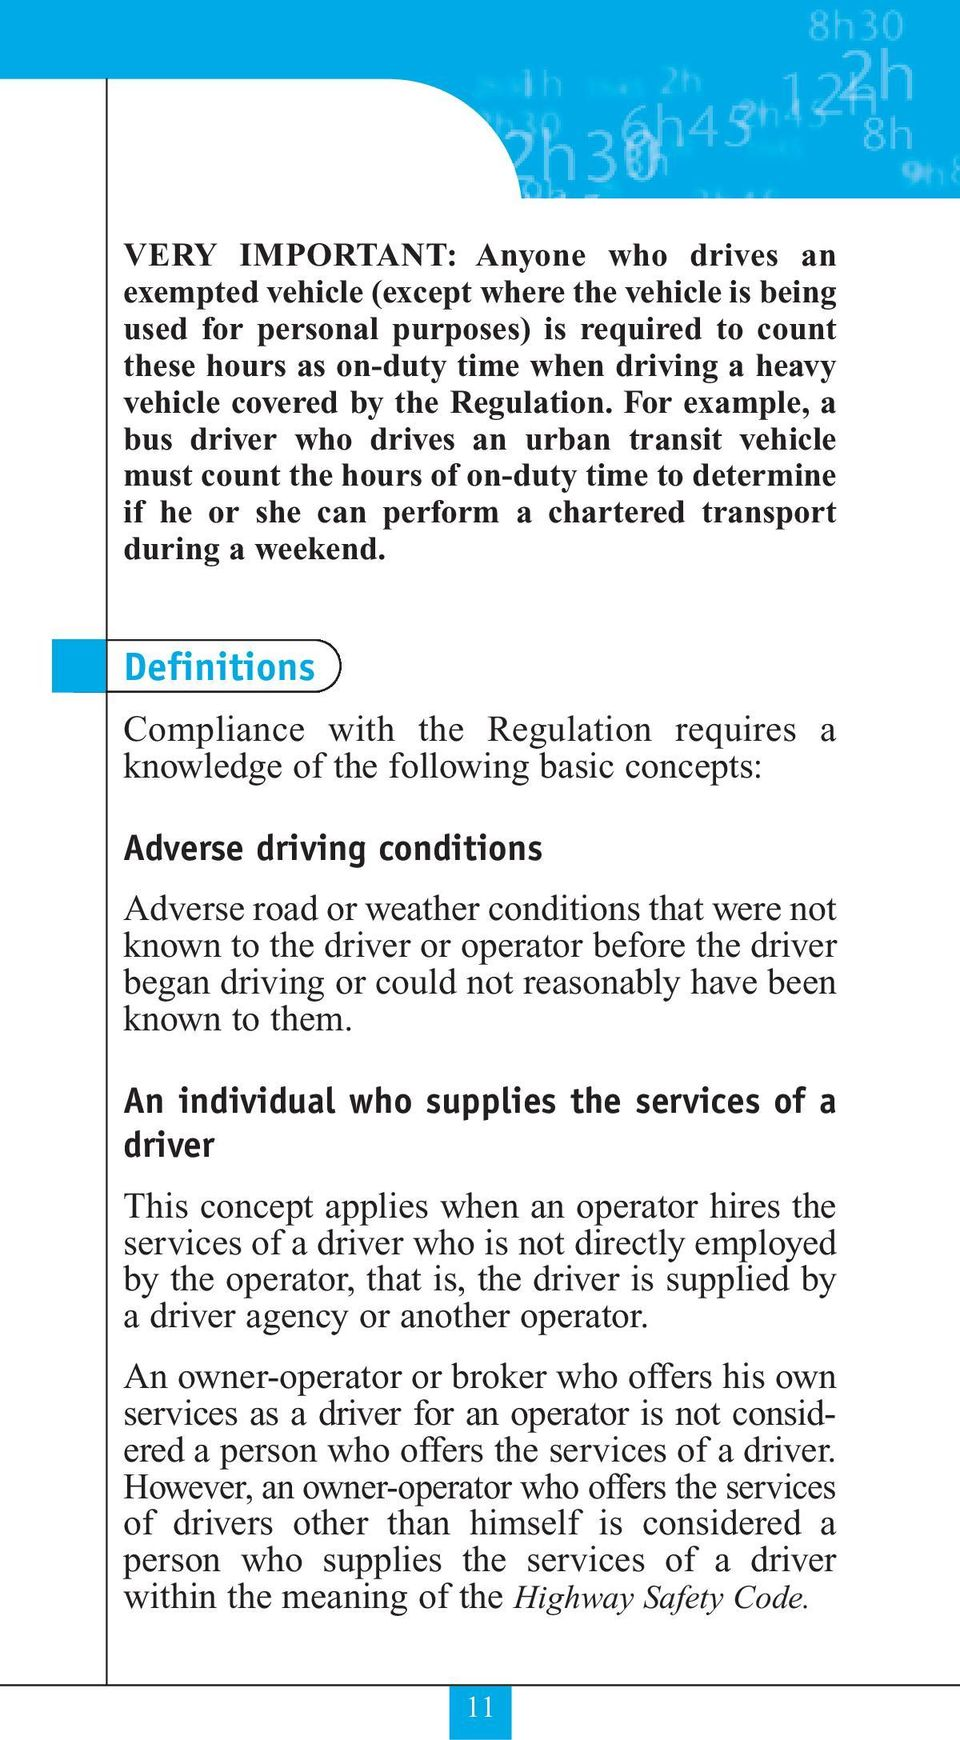 For example, a bus driver who drives an urban transit vehicle must count the hours of on-duty time to determine if he or she can perform a chartered transport during a weekend.